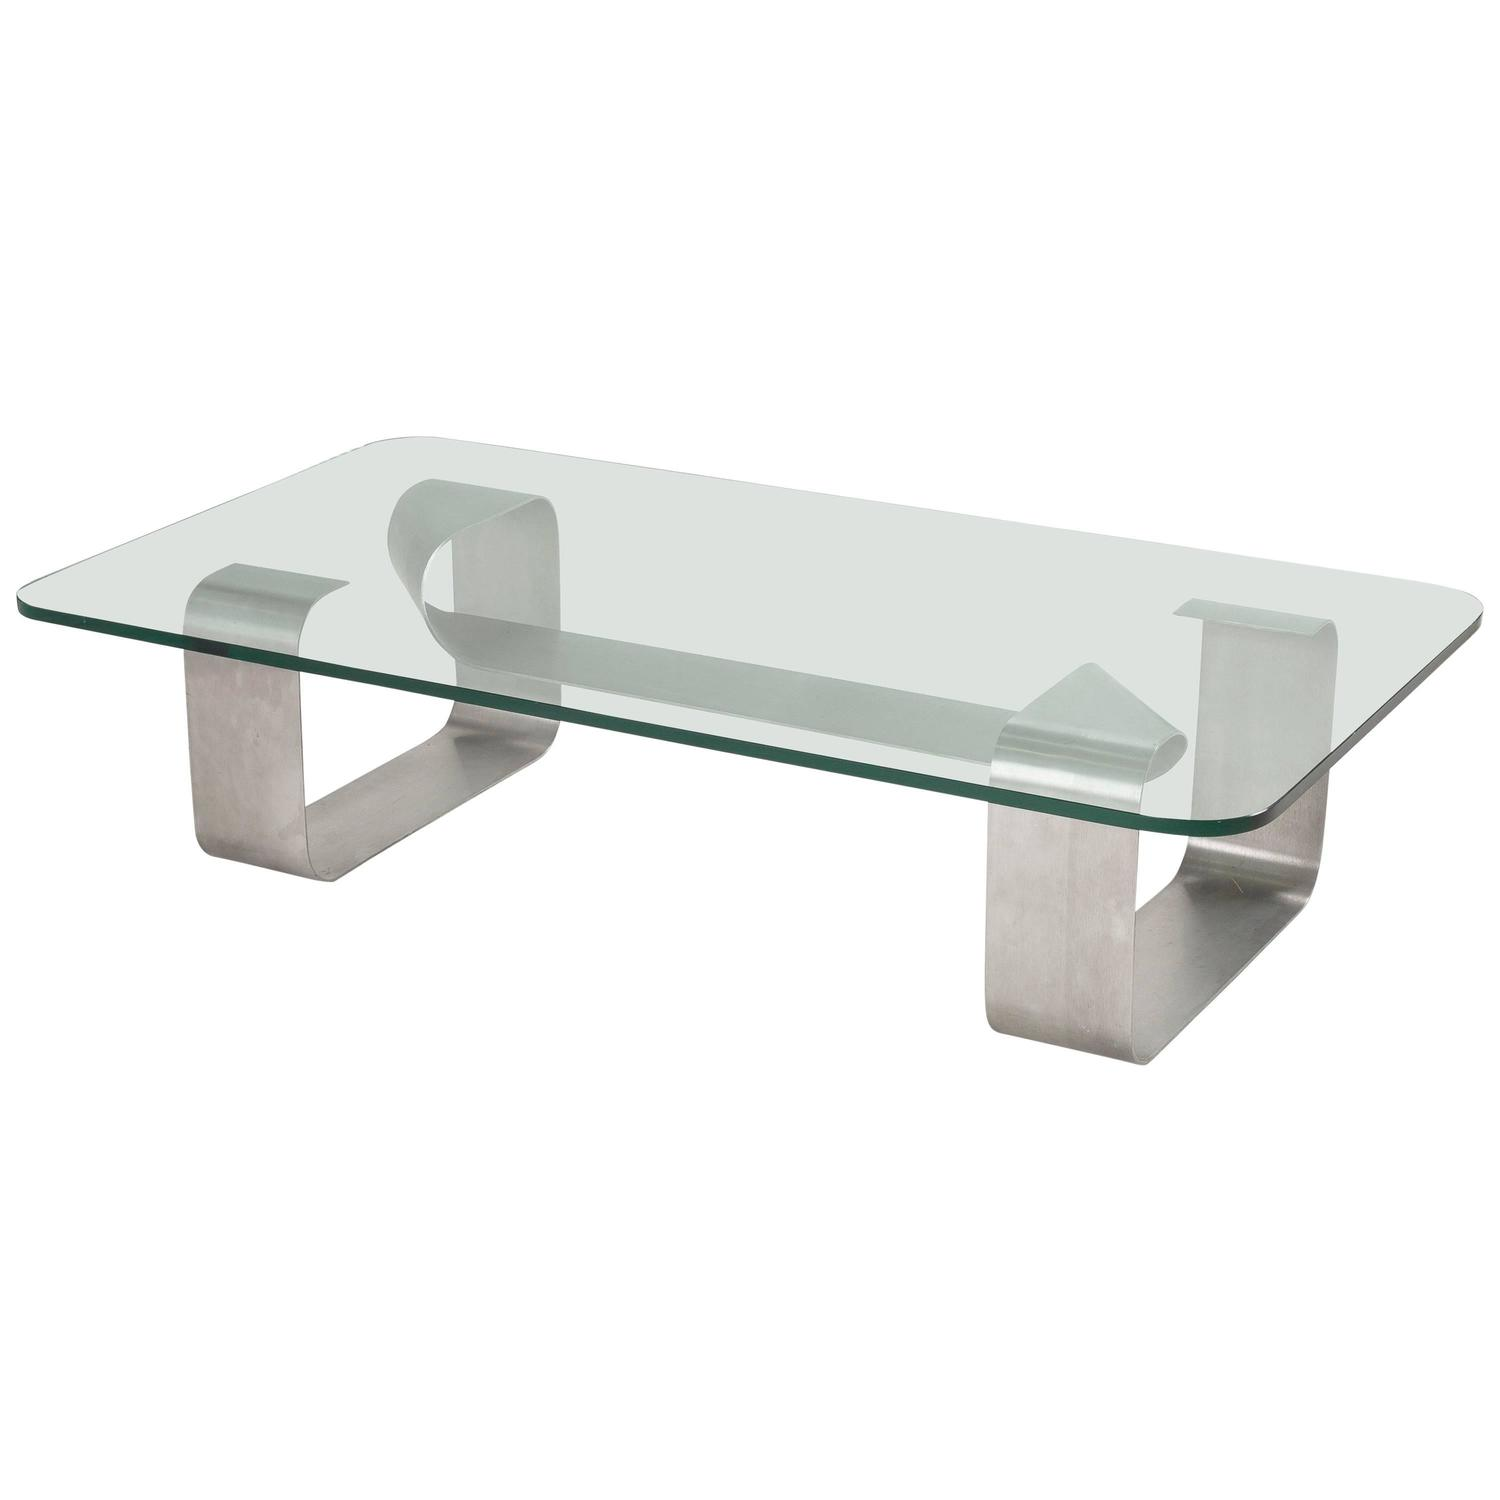 Steel coffee table with glass top by paul legeard for dom at 1stdibs Metal glass top coffee table